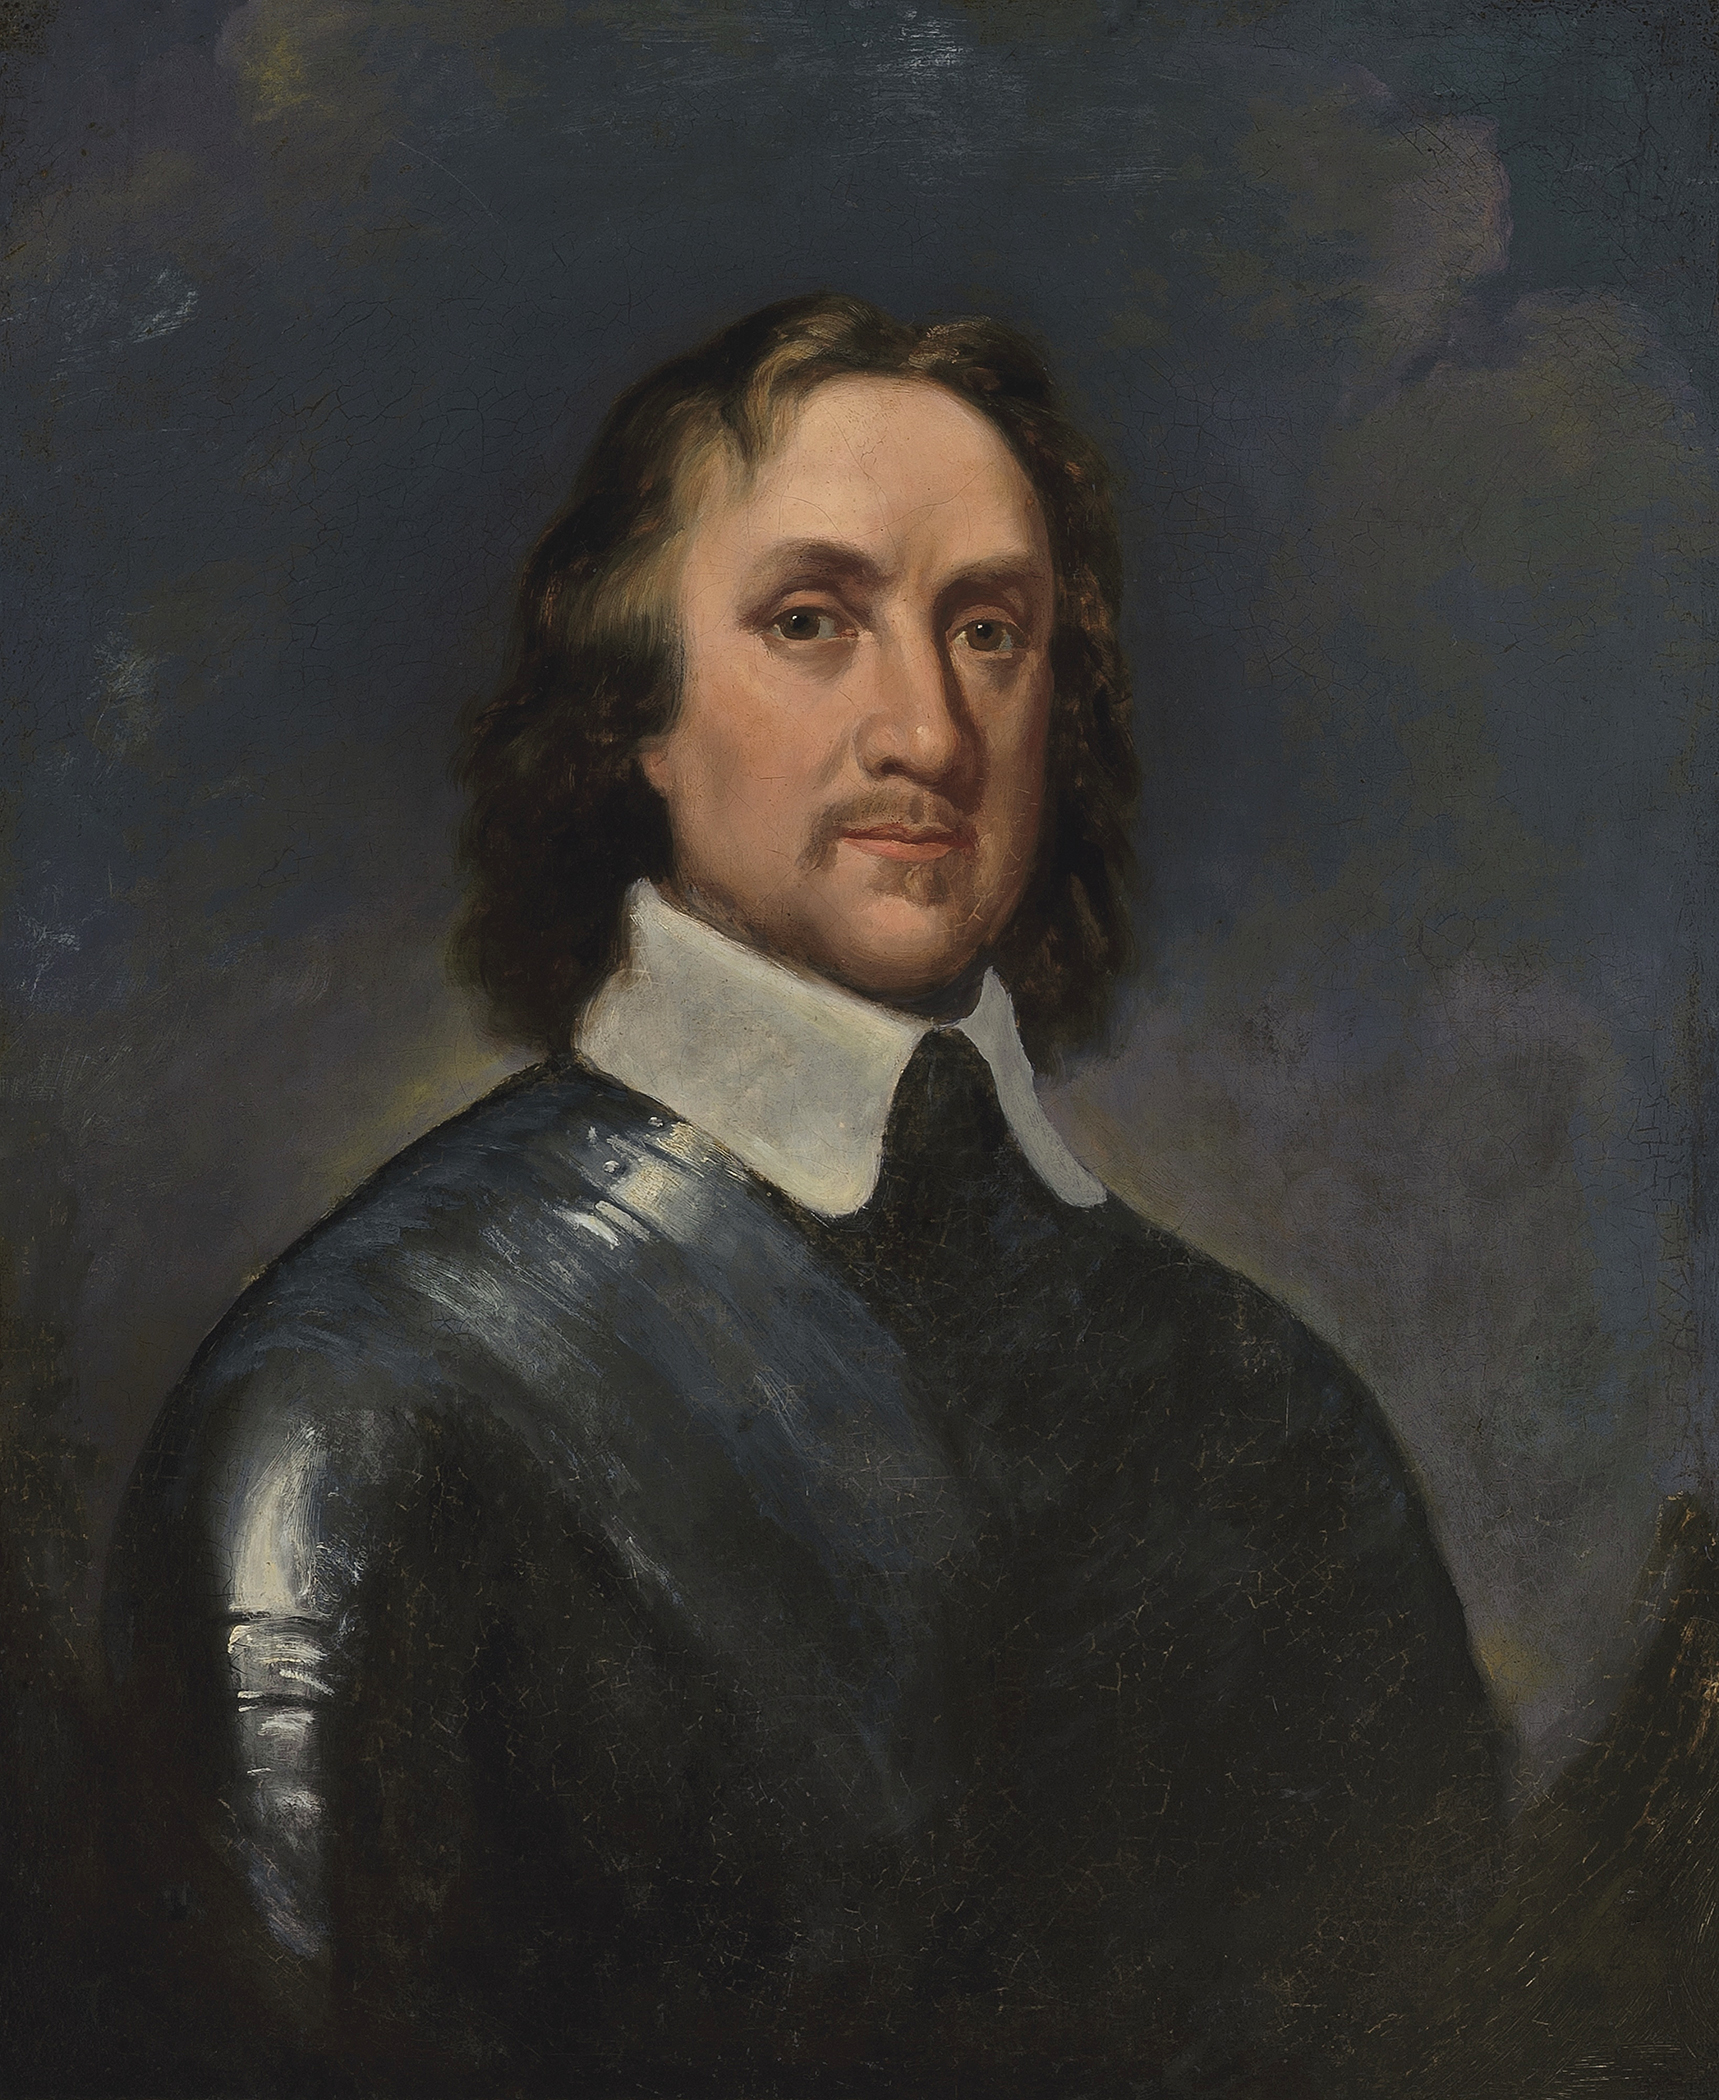 Portrait of Oliver Cromwell (1599-1658), Captain General and Commander-in-Chief of the Forces (1650-1653), Lord Protector of England, Scotland and Ireland (1653-1658)  | Portraits of Kings